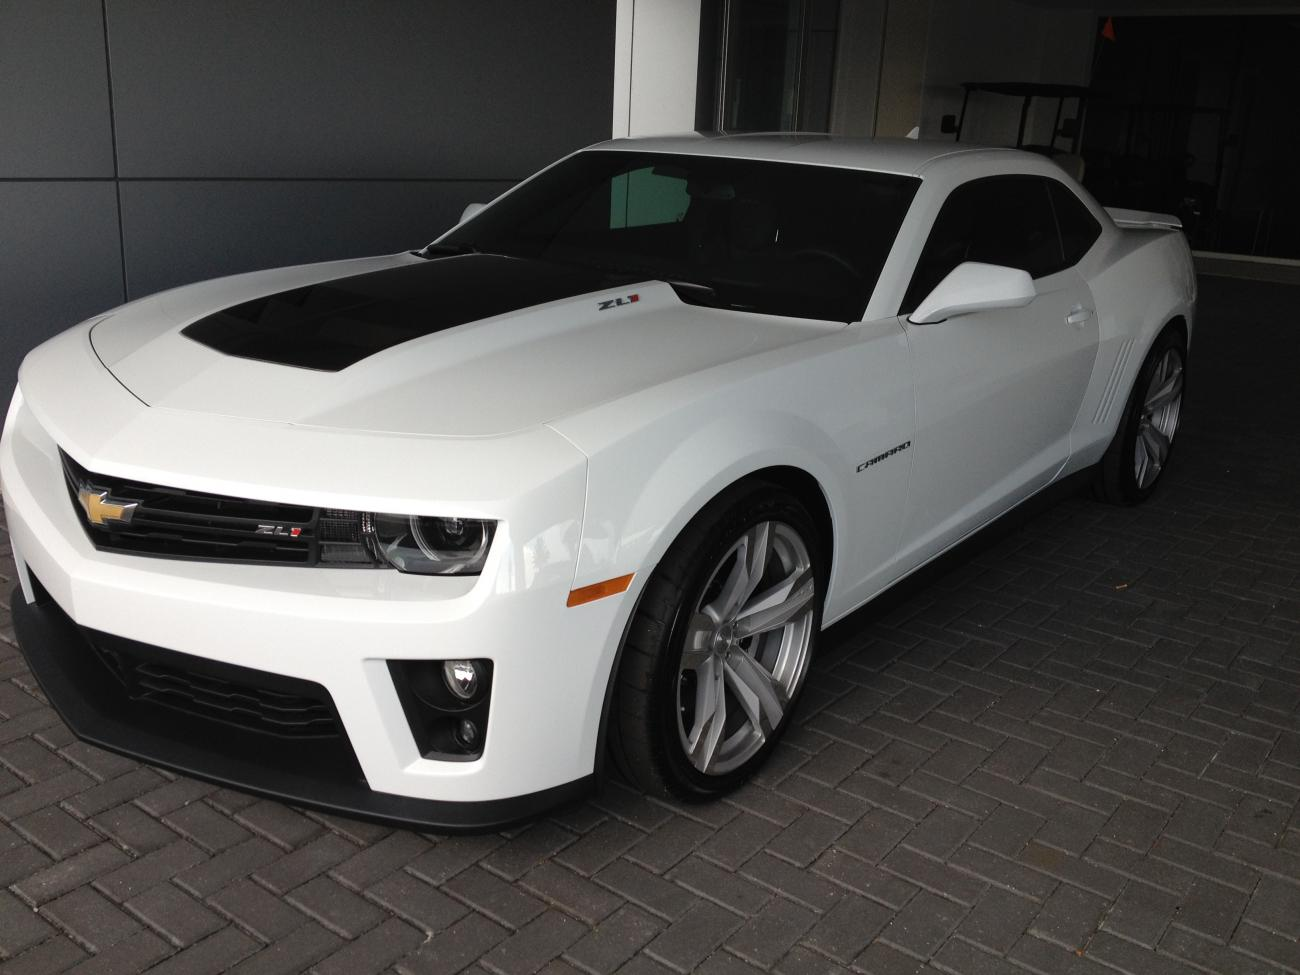 2013 white zl1 carbon fiber hood manual transmission 1600 miles for sale camaro5 chevy. Black Bedroom Furniture Sets. Home Design Ideas